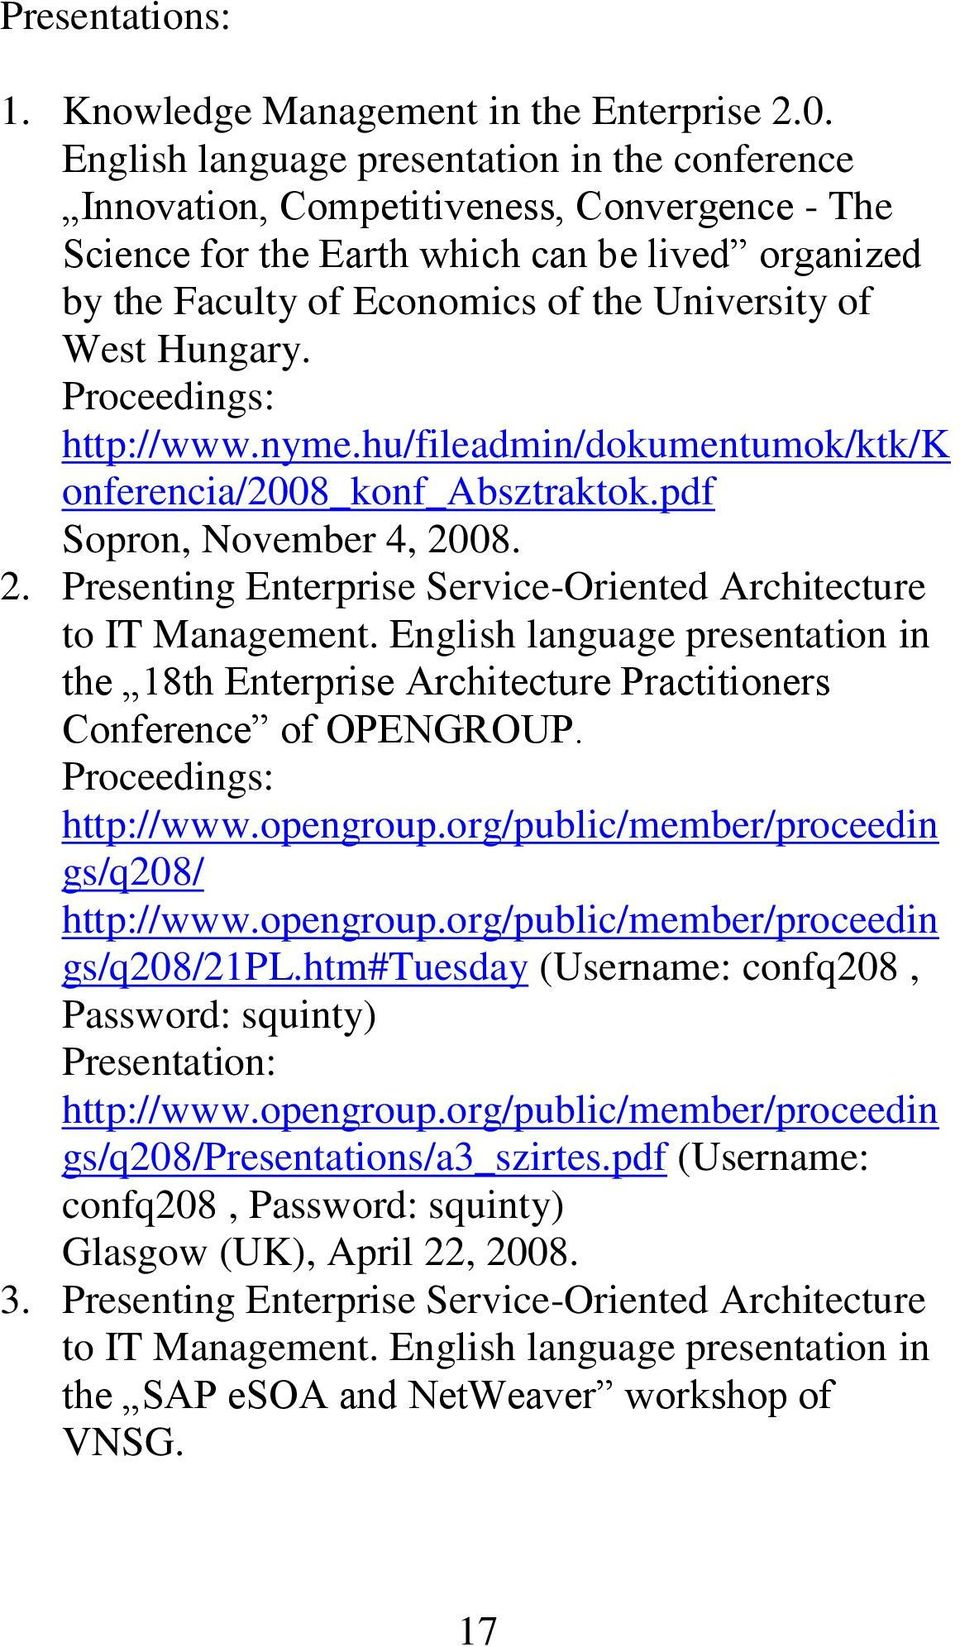 Hungary. Proceedings: http://www.nyme.hu/fileadmin/dokumentumok/ktk/k onferencia/2008_konf_absztraktok.pdf Sopron, November 4, 2008. 2. Presenting Enterprise Service-Oriented Architecture to IT Management.